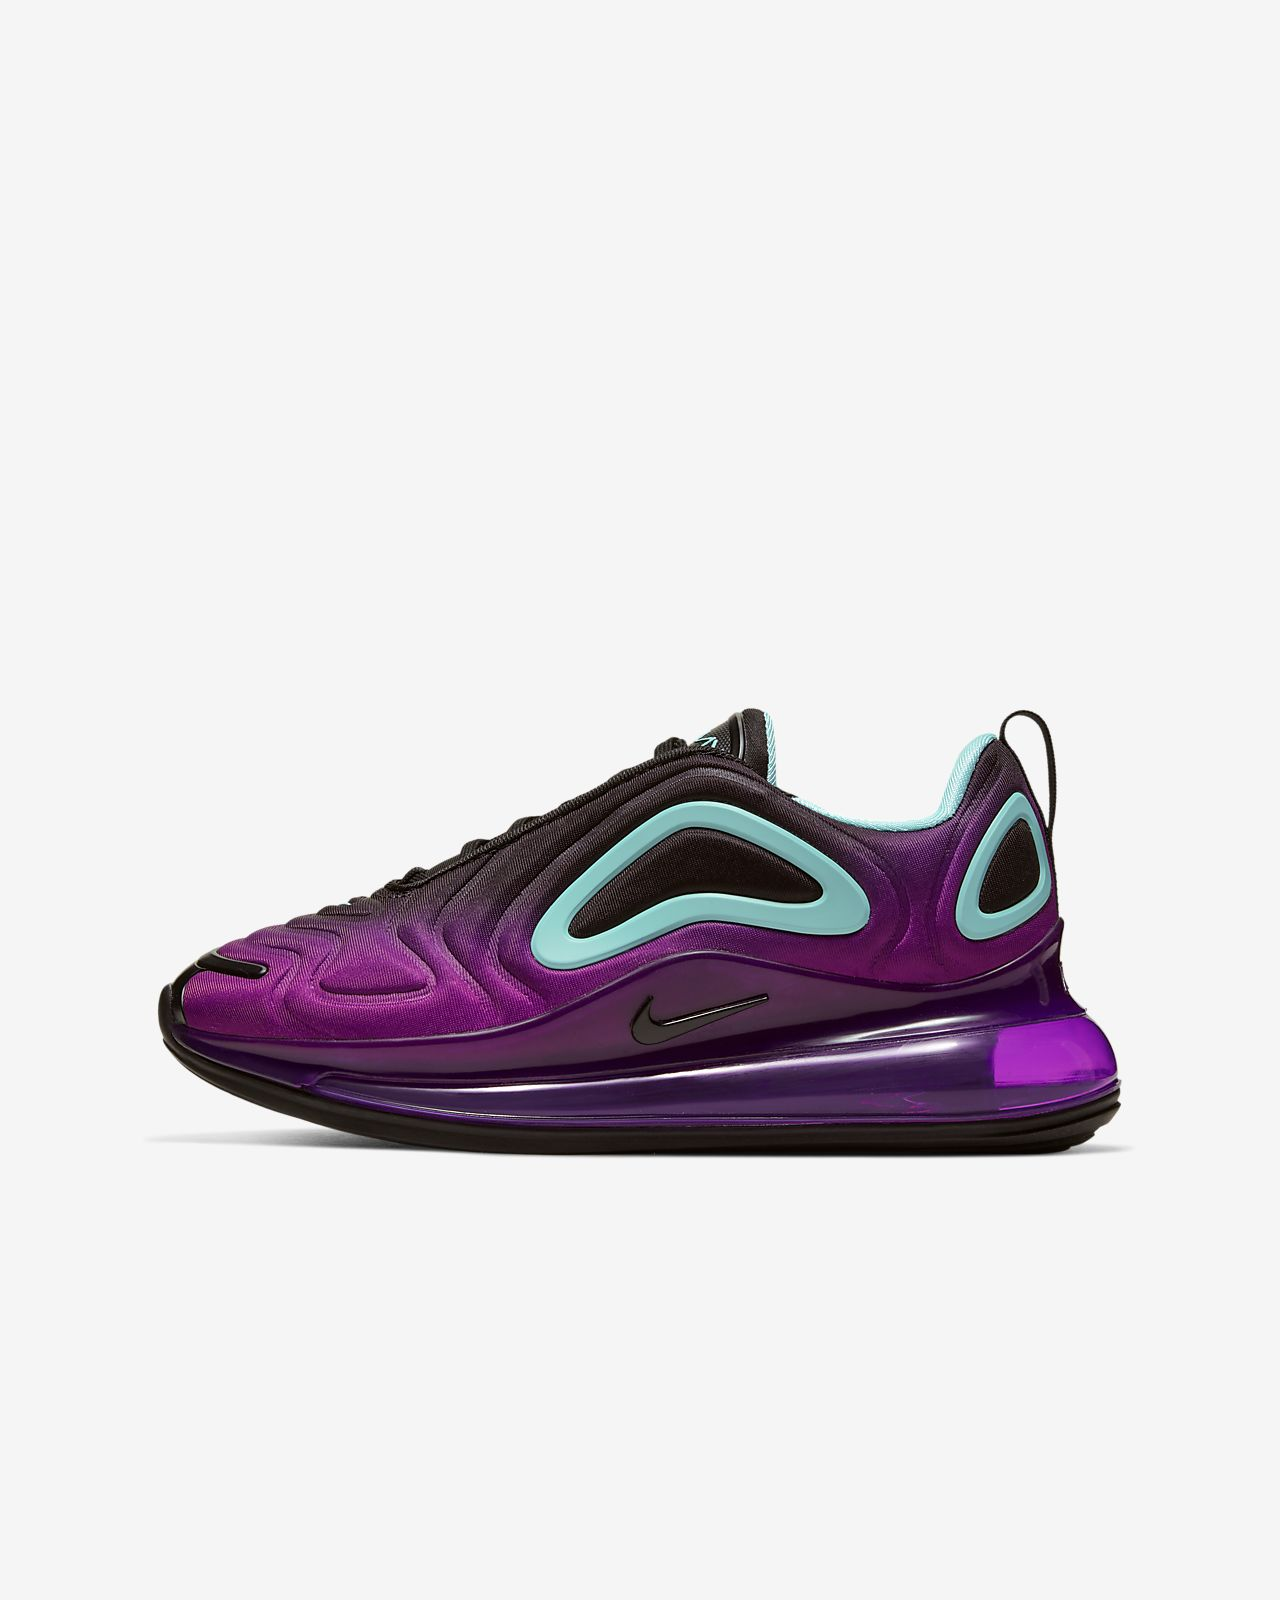 Nike Air Max 720 LittleBig Kids' Shoe